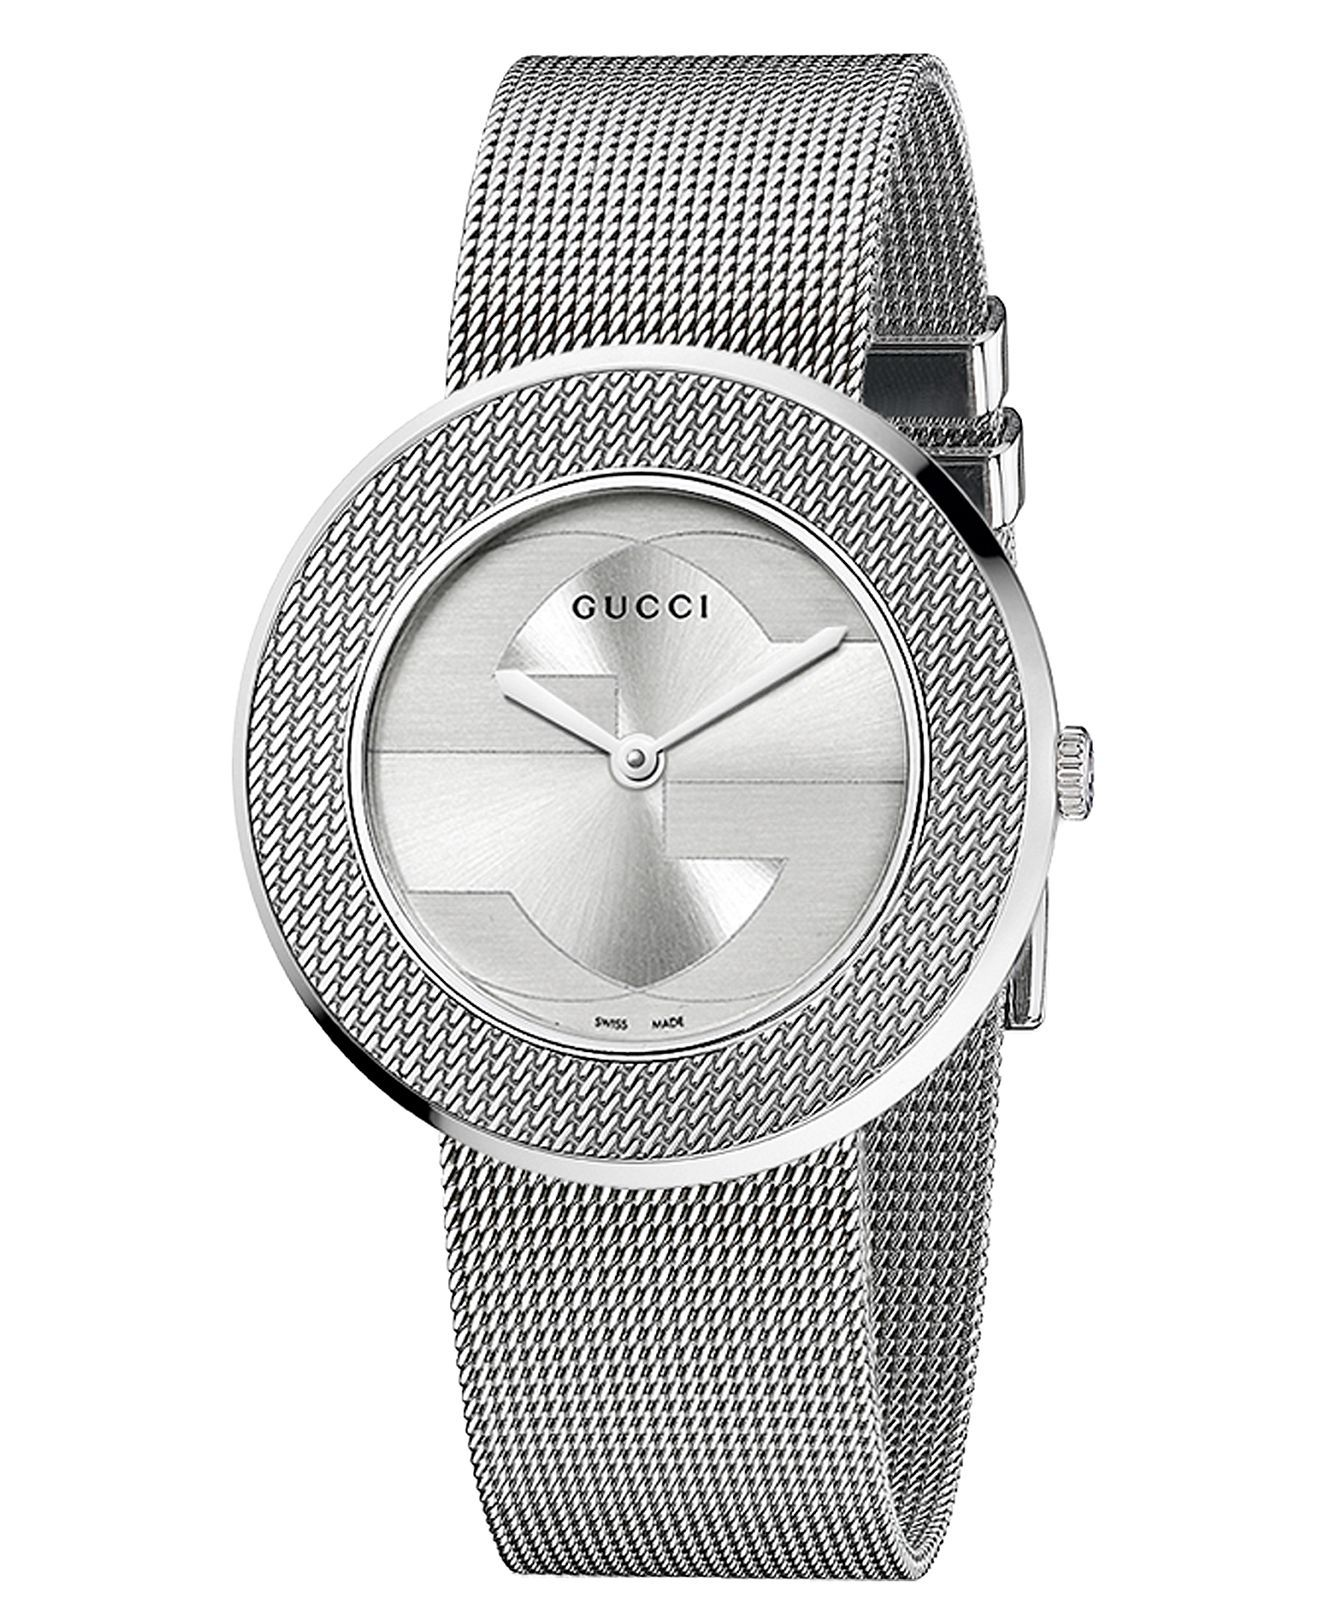 8aa8a23948f Gucci Watch Strap and Bezel Kit